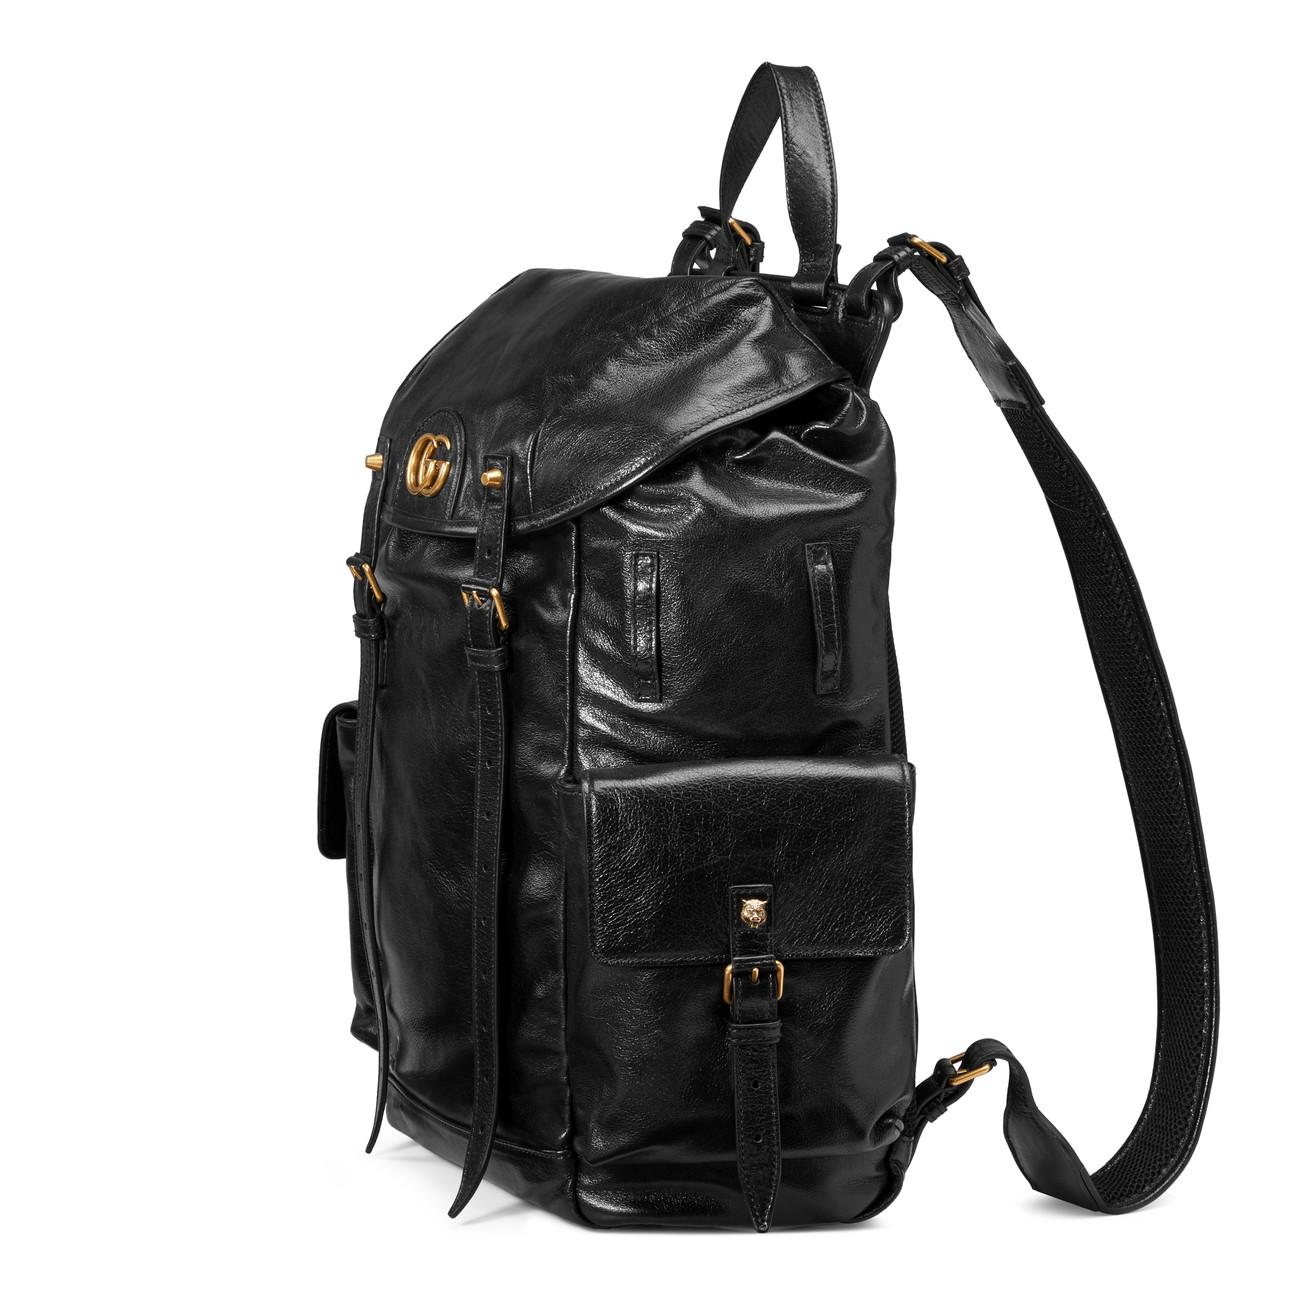 f5da2cfe11f0 Gucci Re(belle) Leather Backpack in Black for Men - Lyst